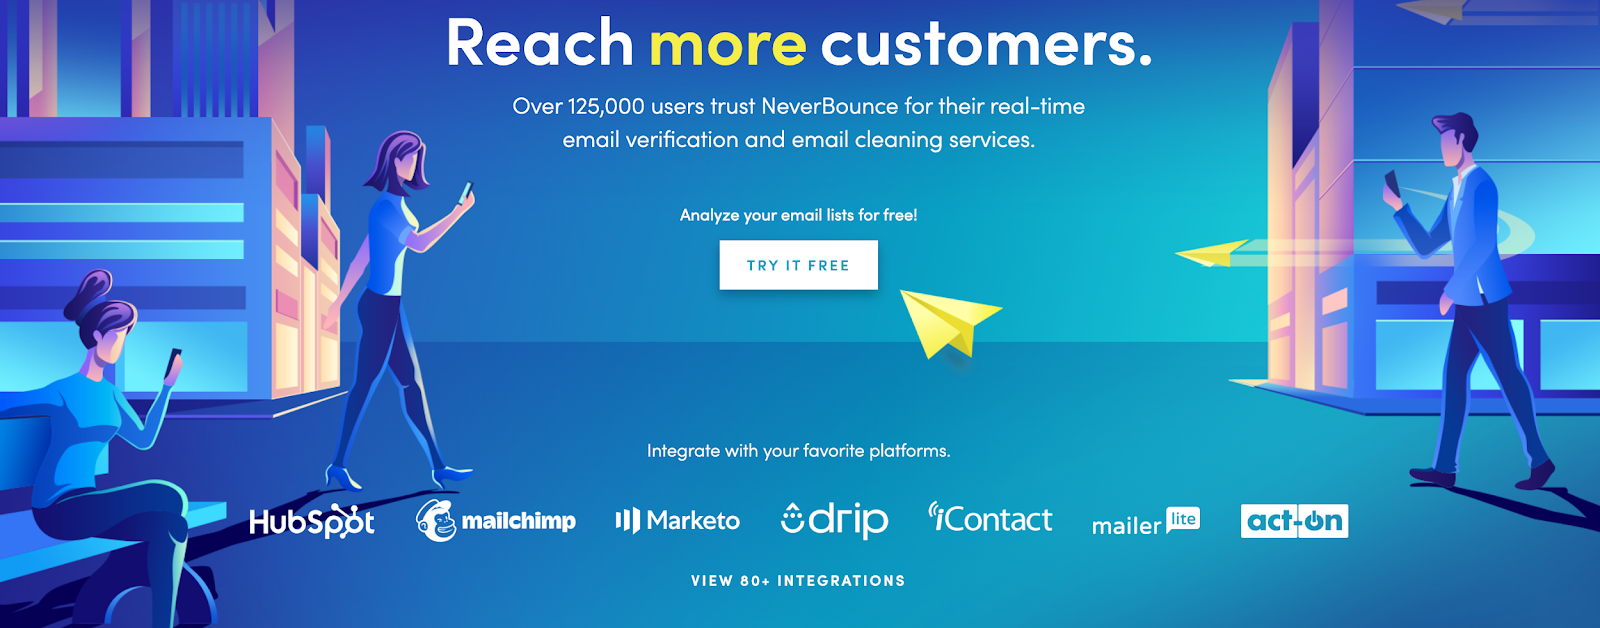 Neverbounce email verification and email cleaning services